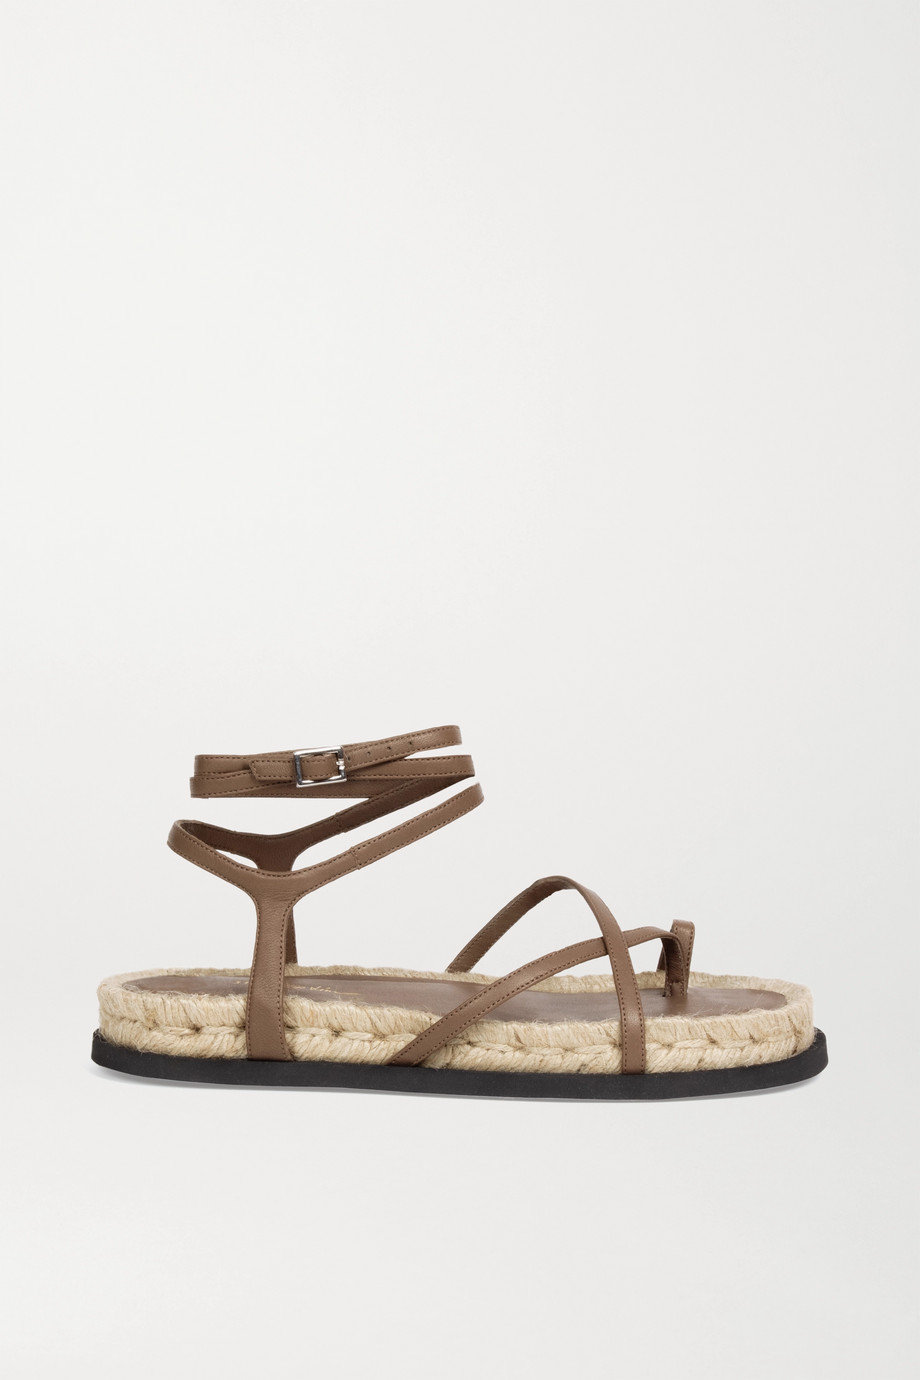 3.1 Phillip Lim Yasmine leather espadrille sandals